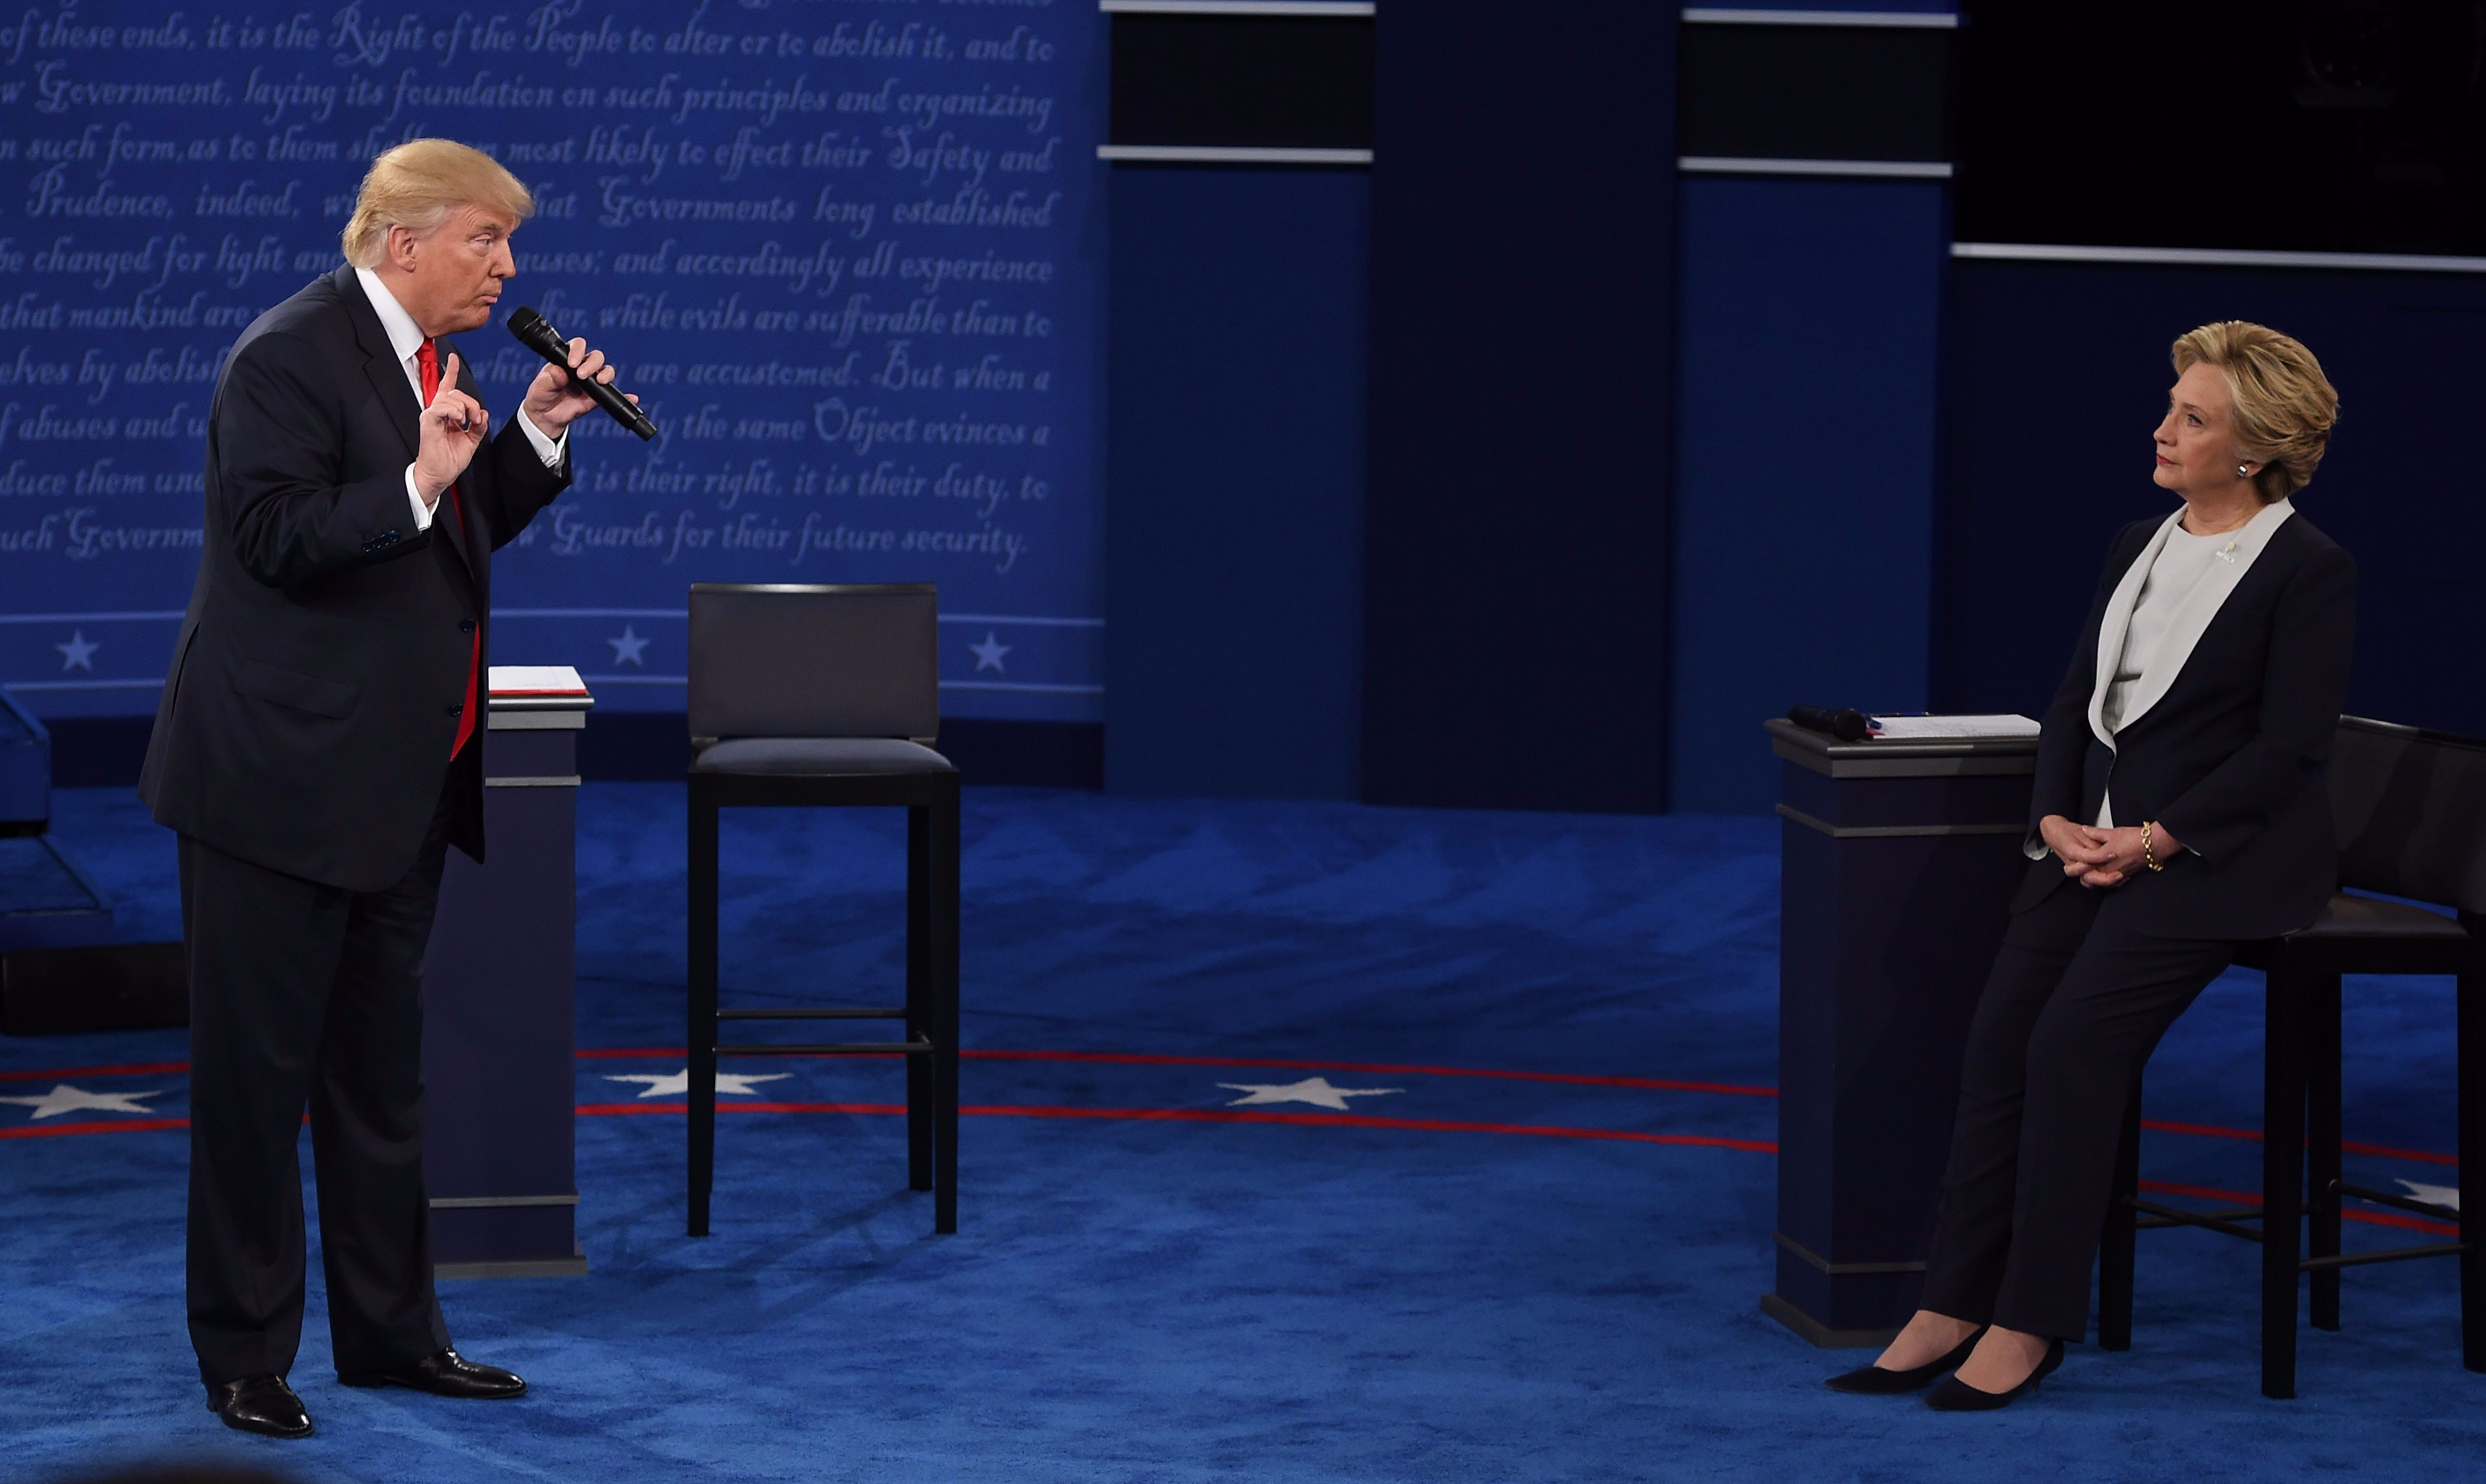 Trump stands above Clinton during the second presidential debate.